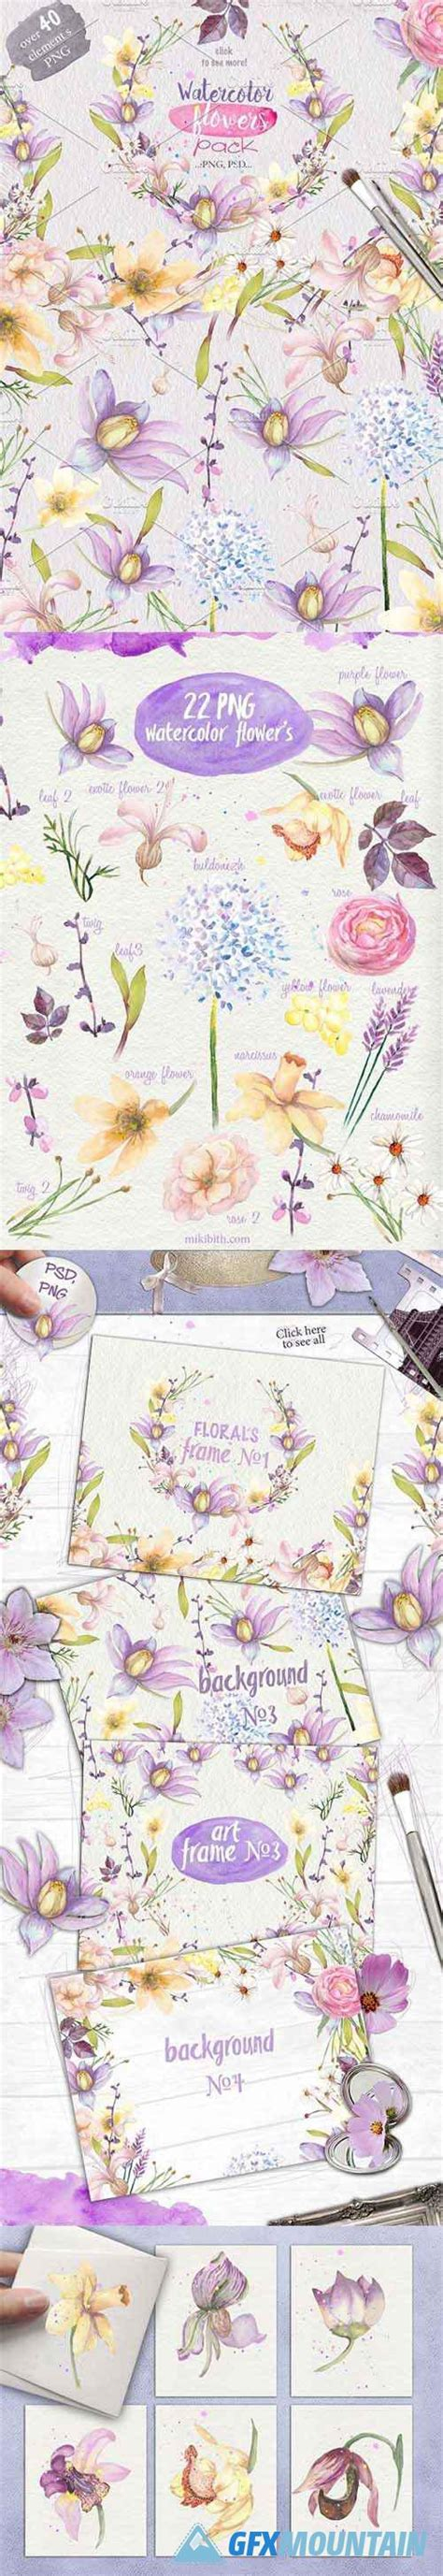 photoshop tutorial watercolor flower watercolor flowers 437160 187 free download graphics fonts